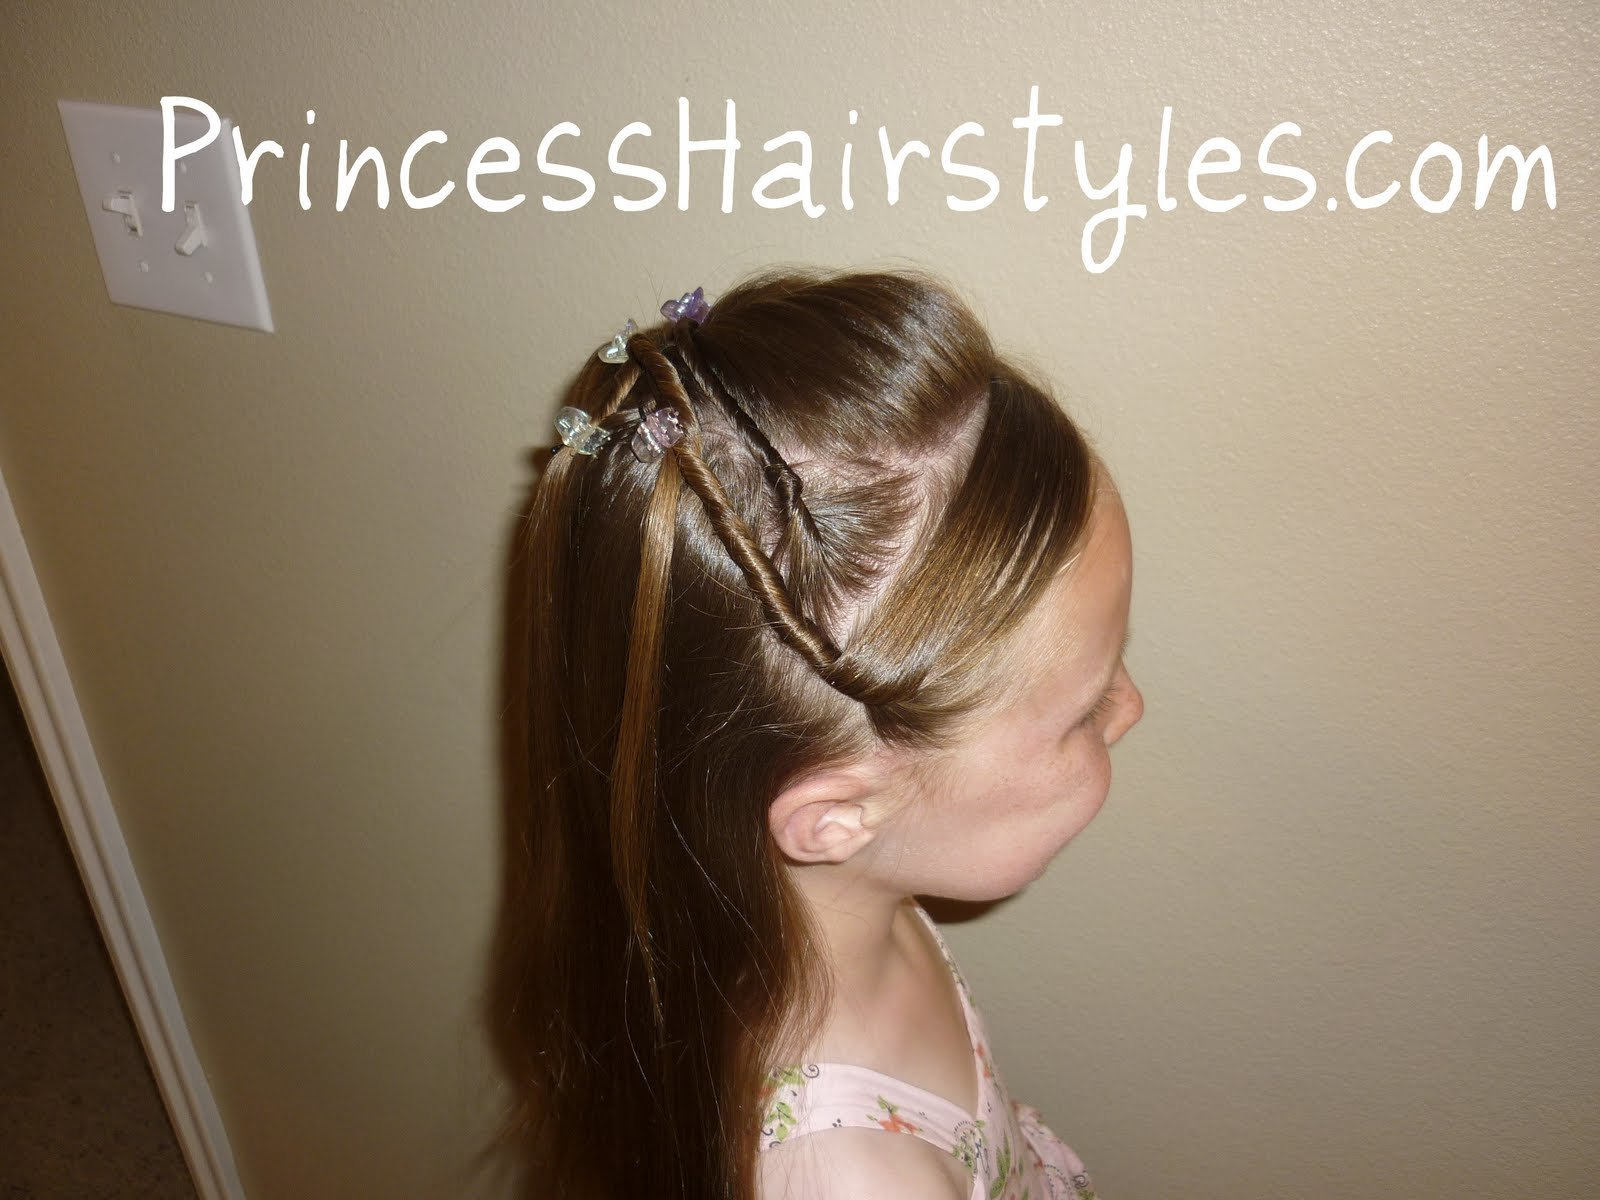 The Best Tween Twists Princess Hairstyle Hairstyles For Girls Pictures